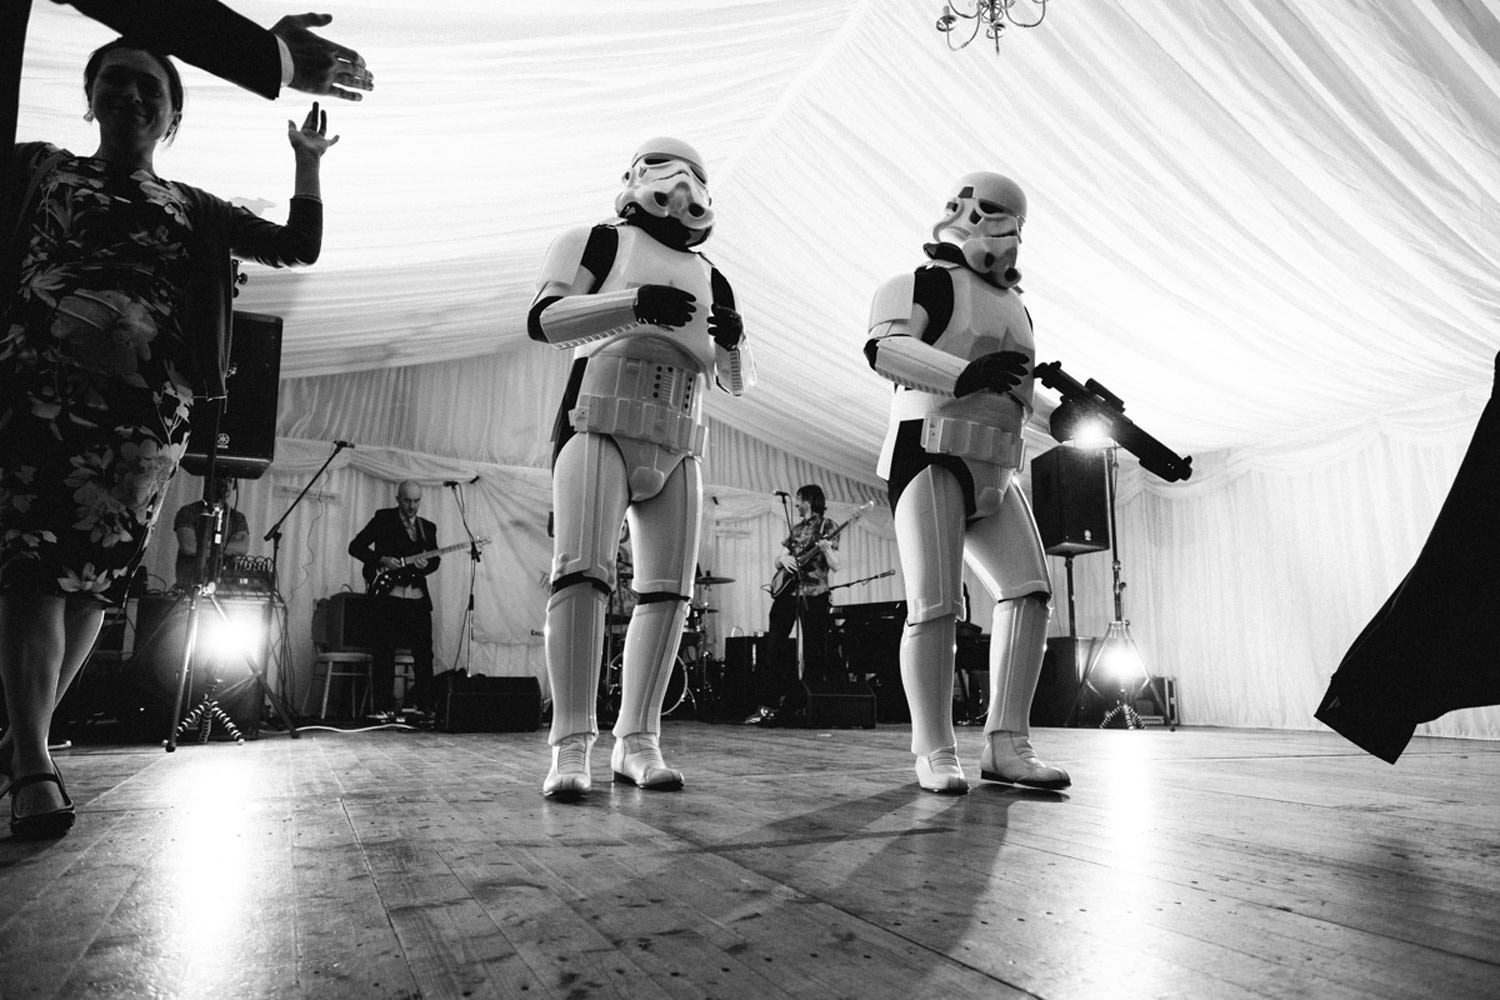 storm troopers from star wars dancing